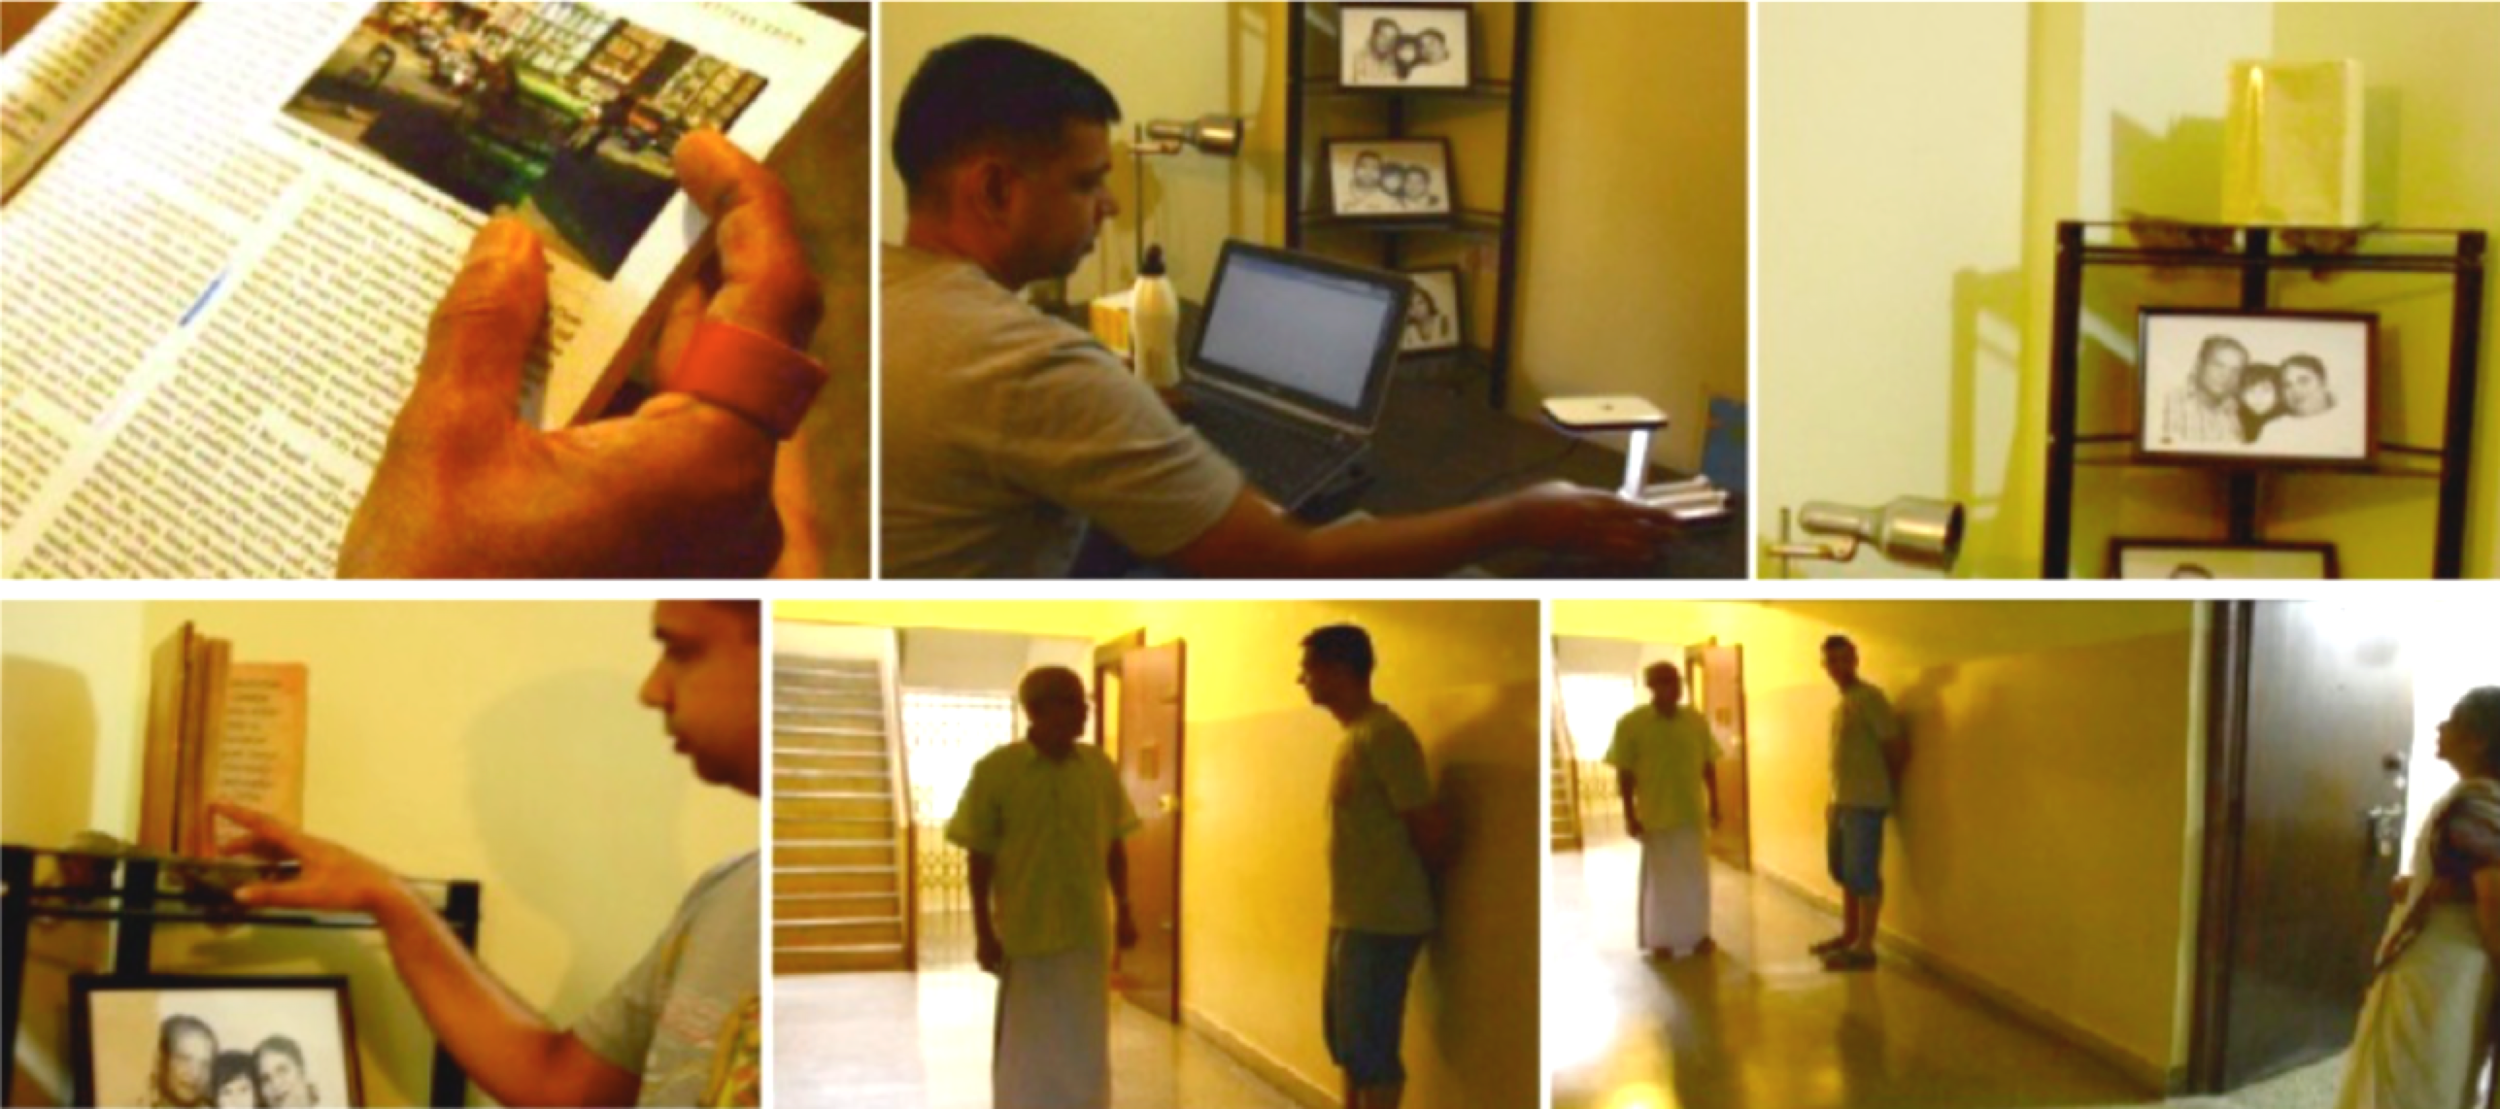 Image of the neighbours Enacting the ReadShare scenario.    From top left to right : Sampath reads and bookmarks; Asad switches on his reading lamp, the book triggered by his presence opens the flaps signalling that Sampath has shared new bookmarks; the book placed in the periphery of his desk.  From bottom left to right : Asad browsing the book; Asad and Sampath bumping into each other in the corridor; A conversation involving the Asad, Sampath and his wife.